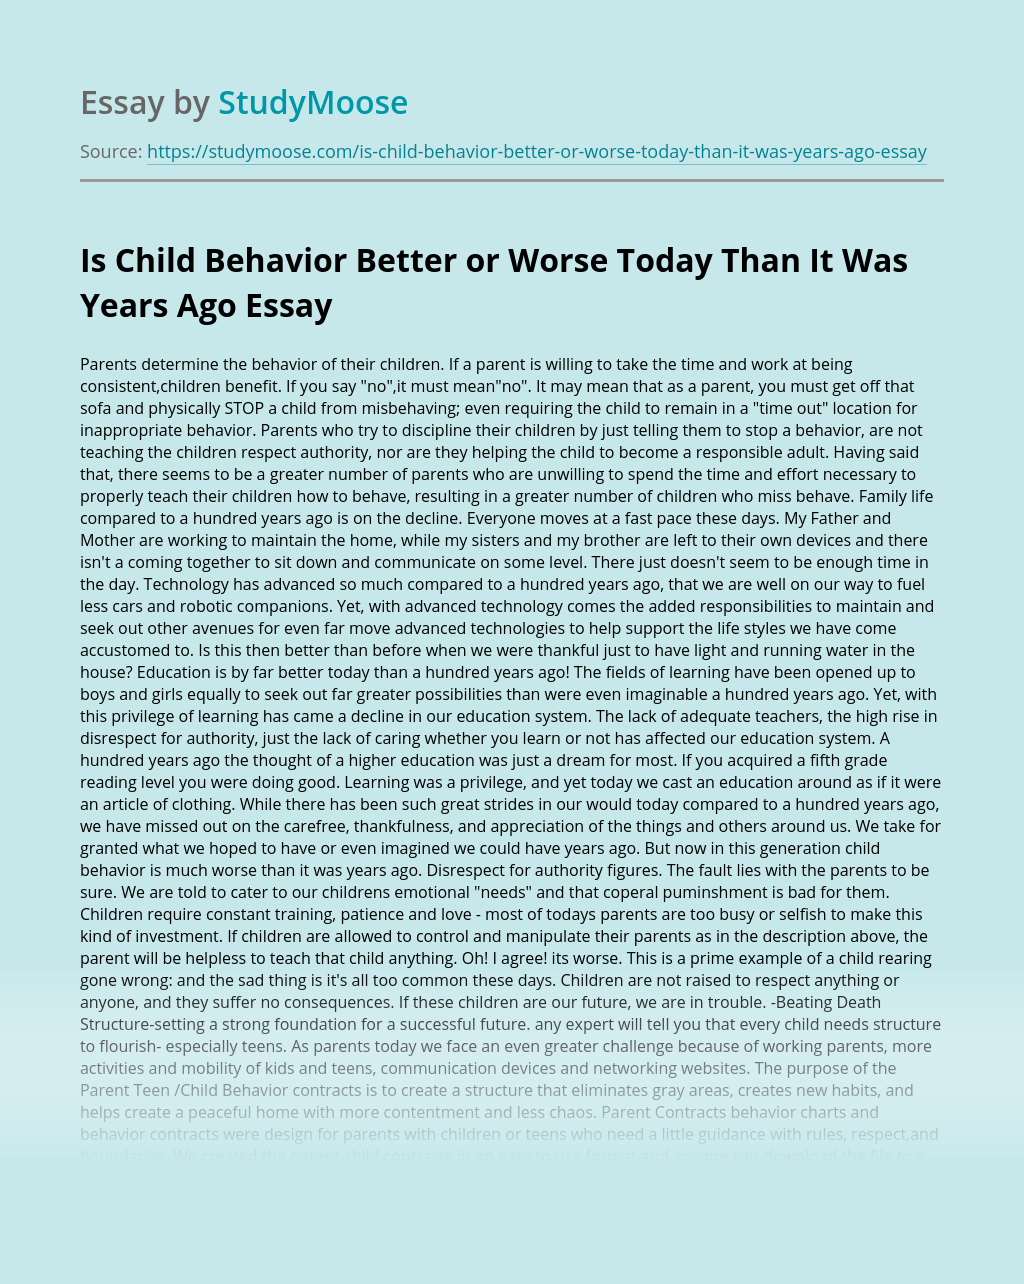 Is Child Behavior Better or Worse Today Than It Was Years Ago